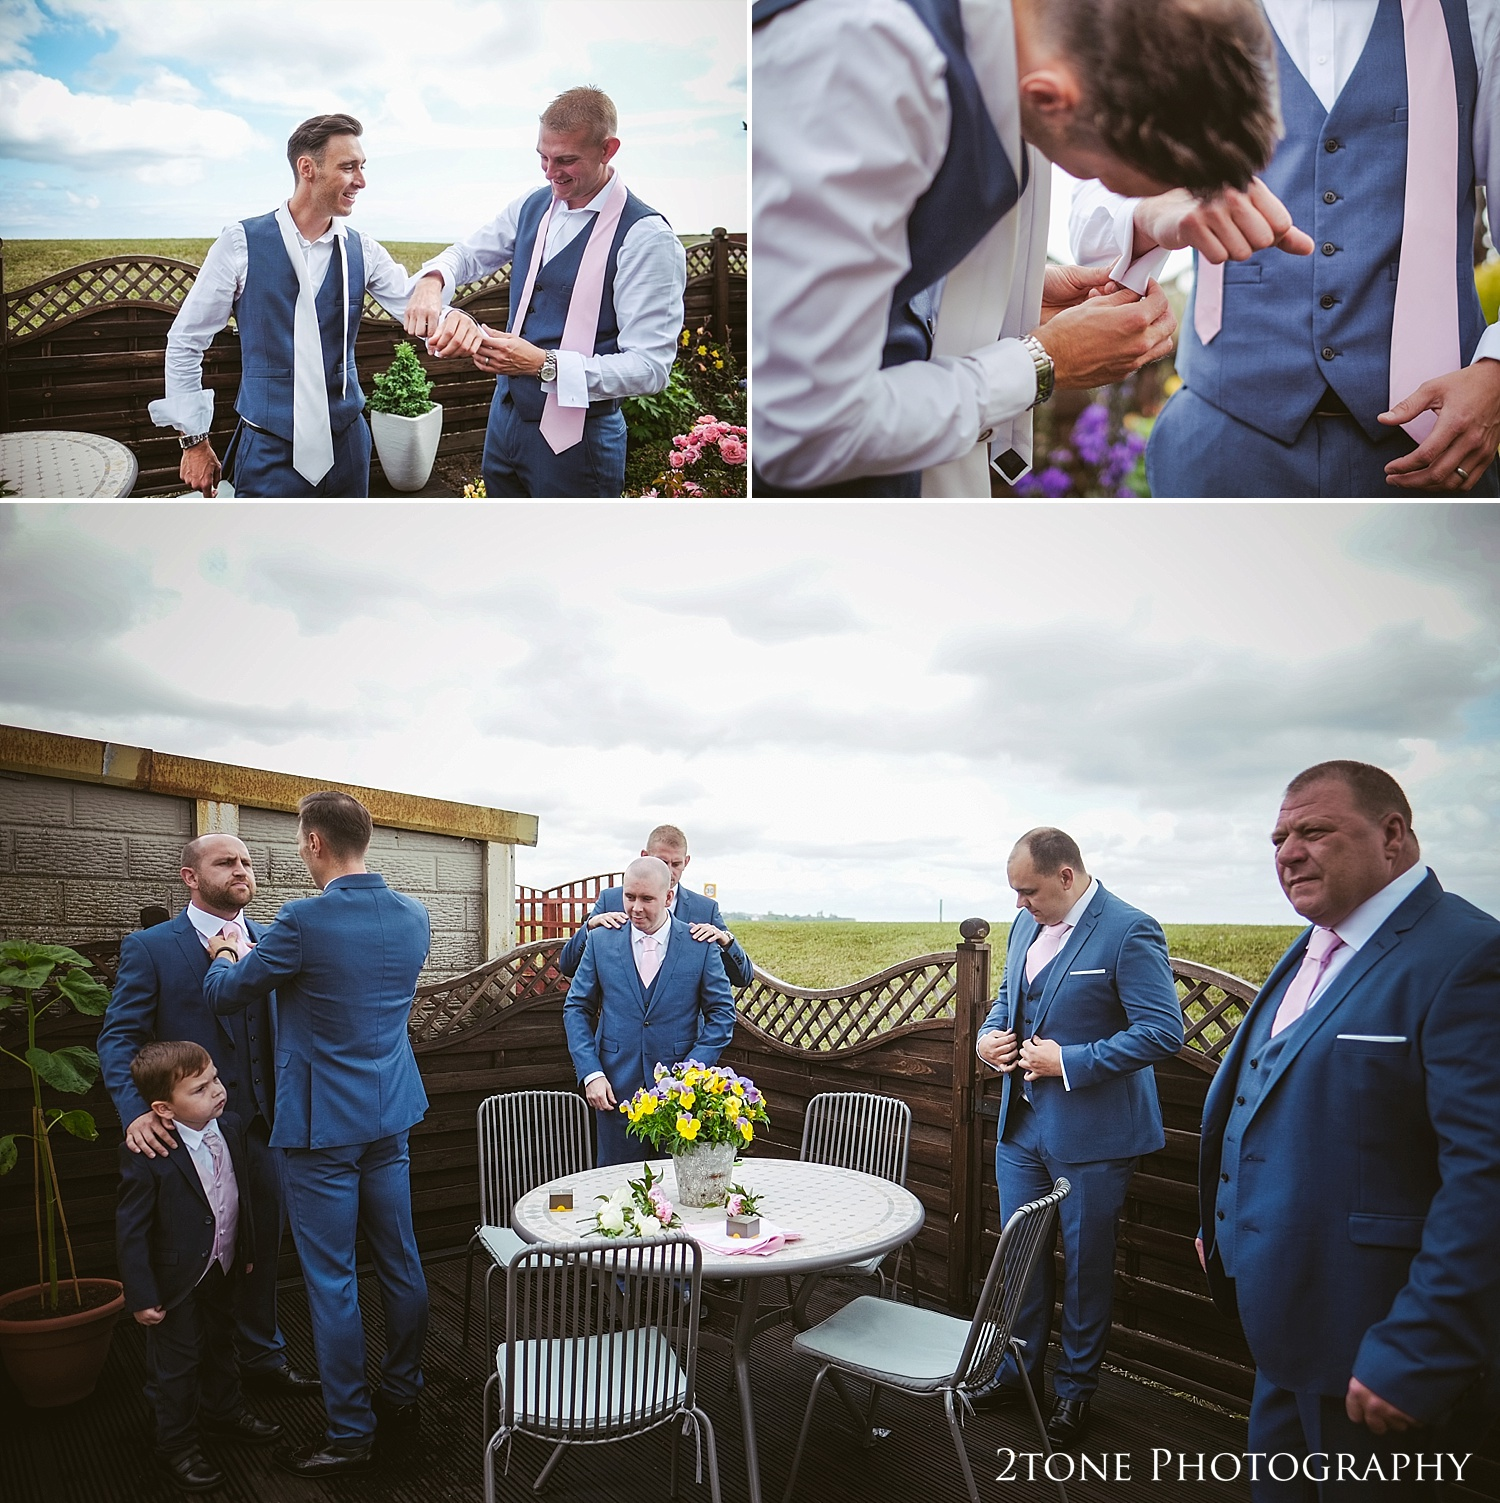 Grooms preparations by Durham based wedding photographers www.2tonephotography.co.uk